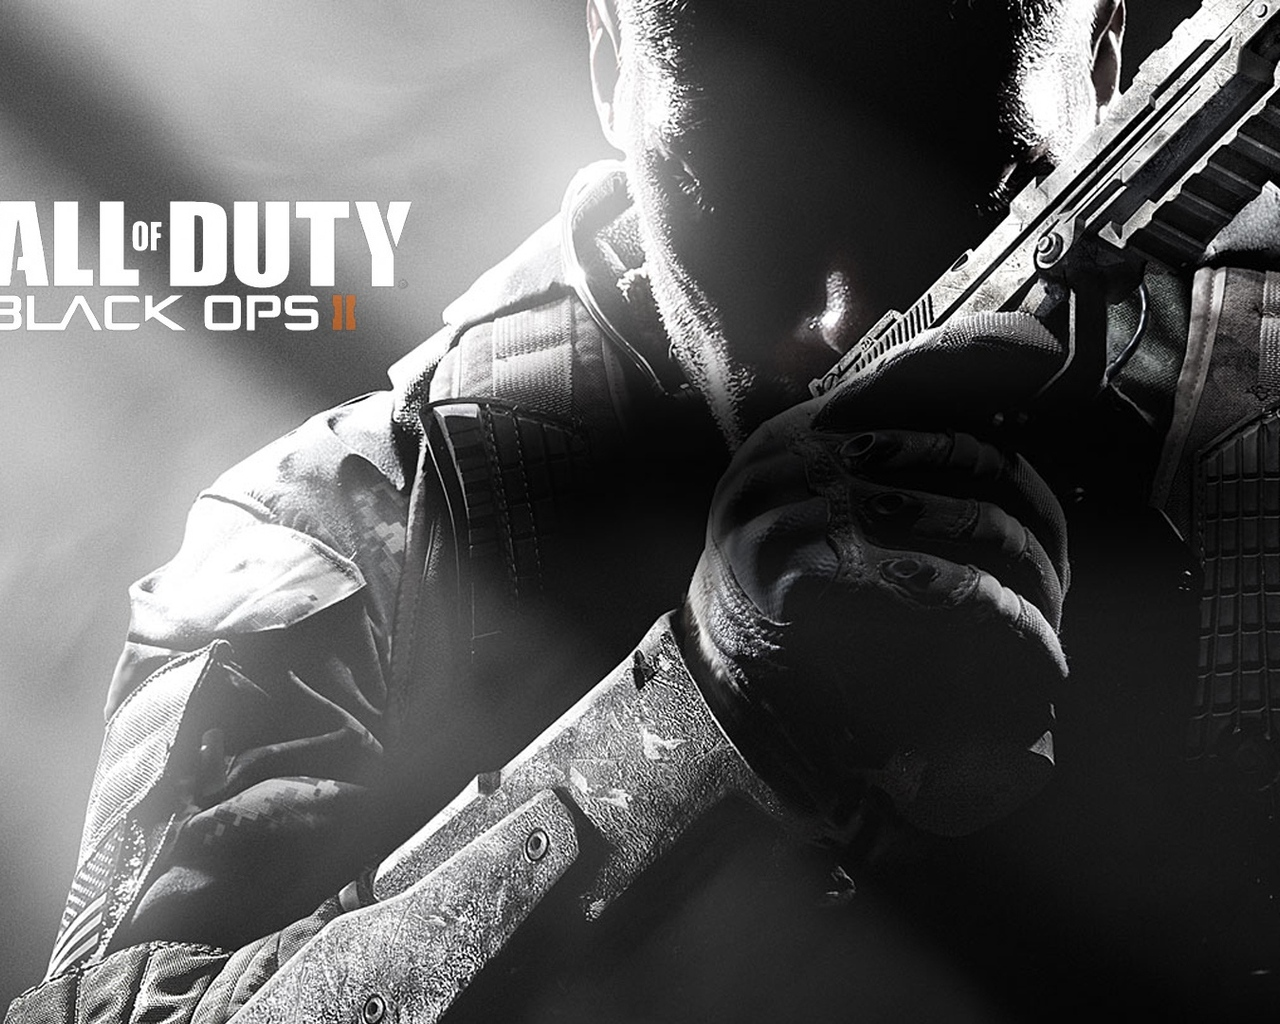 1280x1024 Call Of Duty Black Ops 2 1280x1024 Resolution Hd 4k